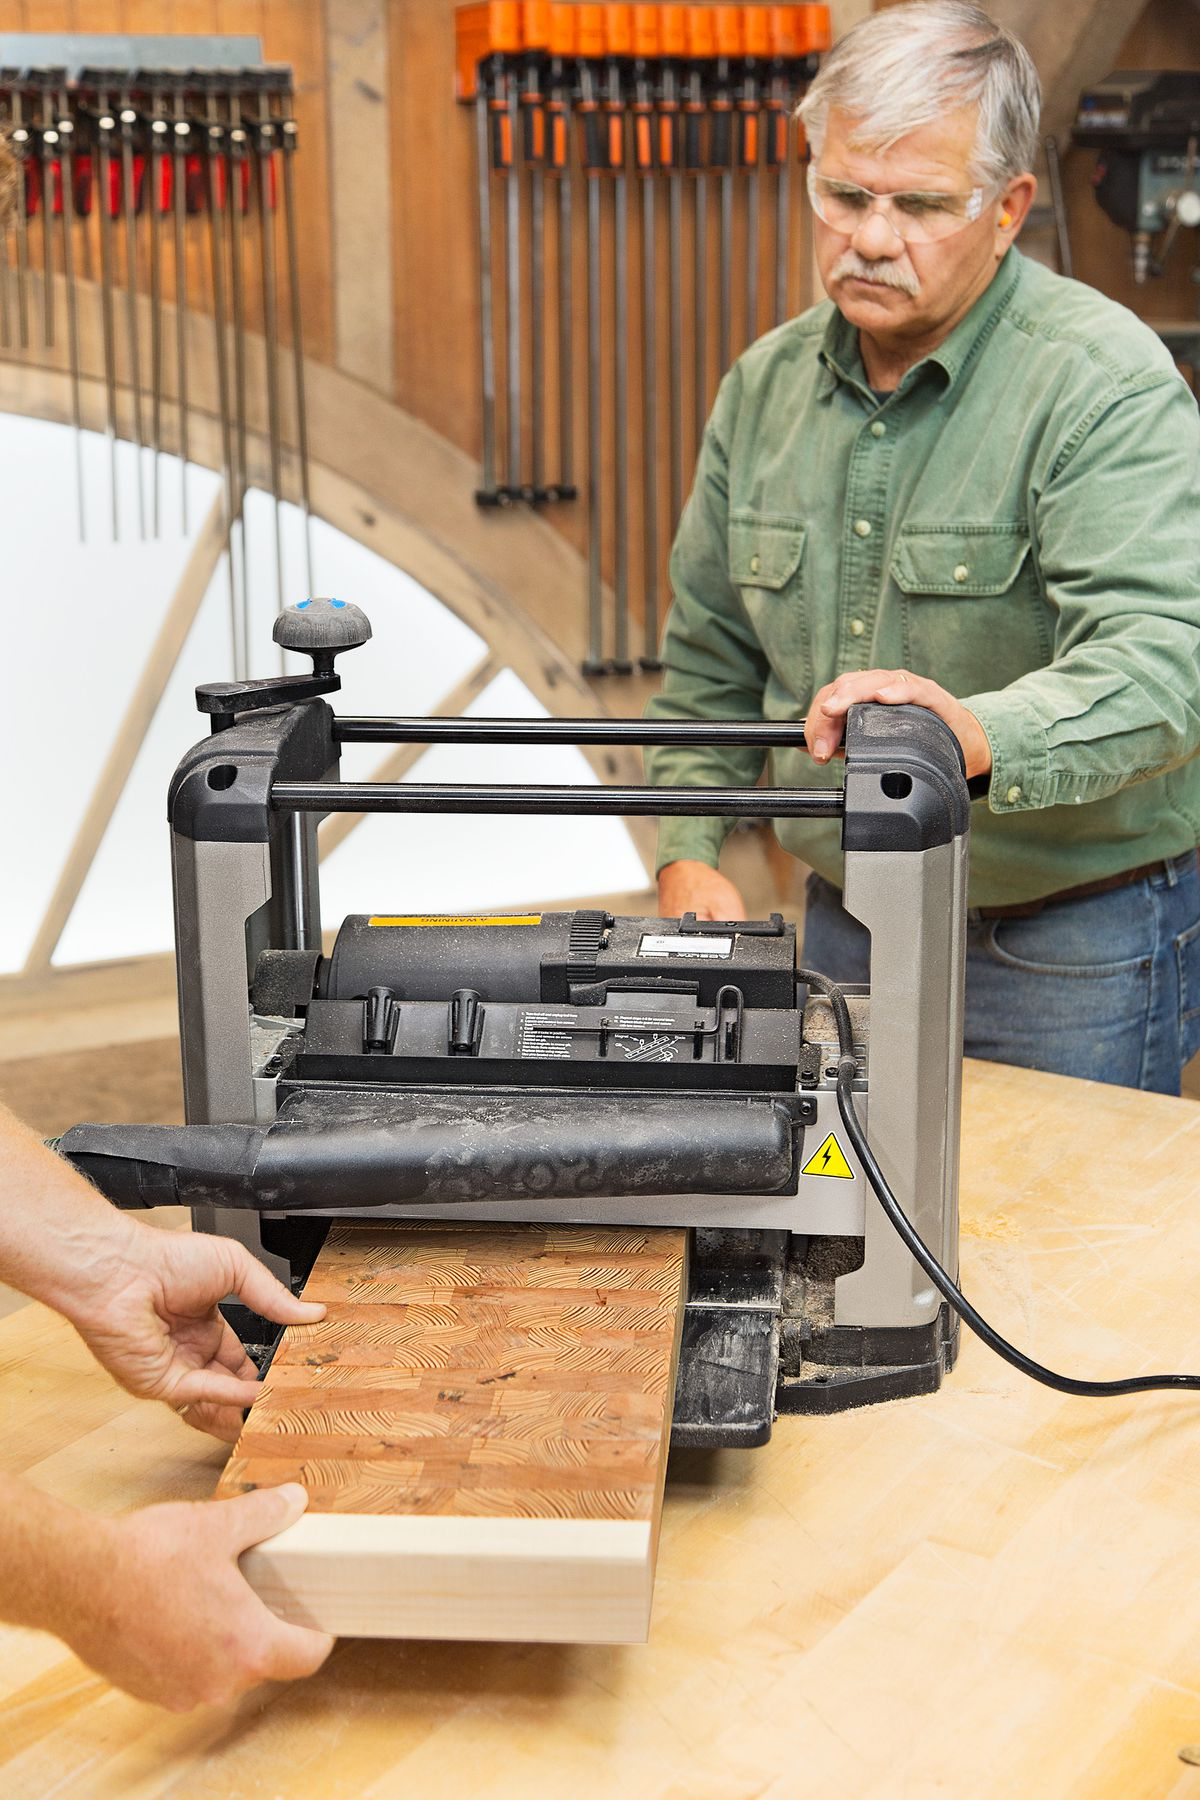 Person using a thickness planer to smooth the face of the end grain cutting board.